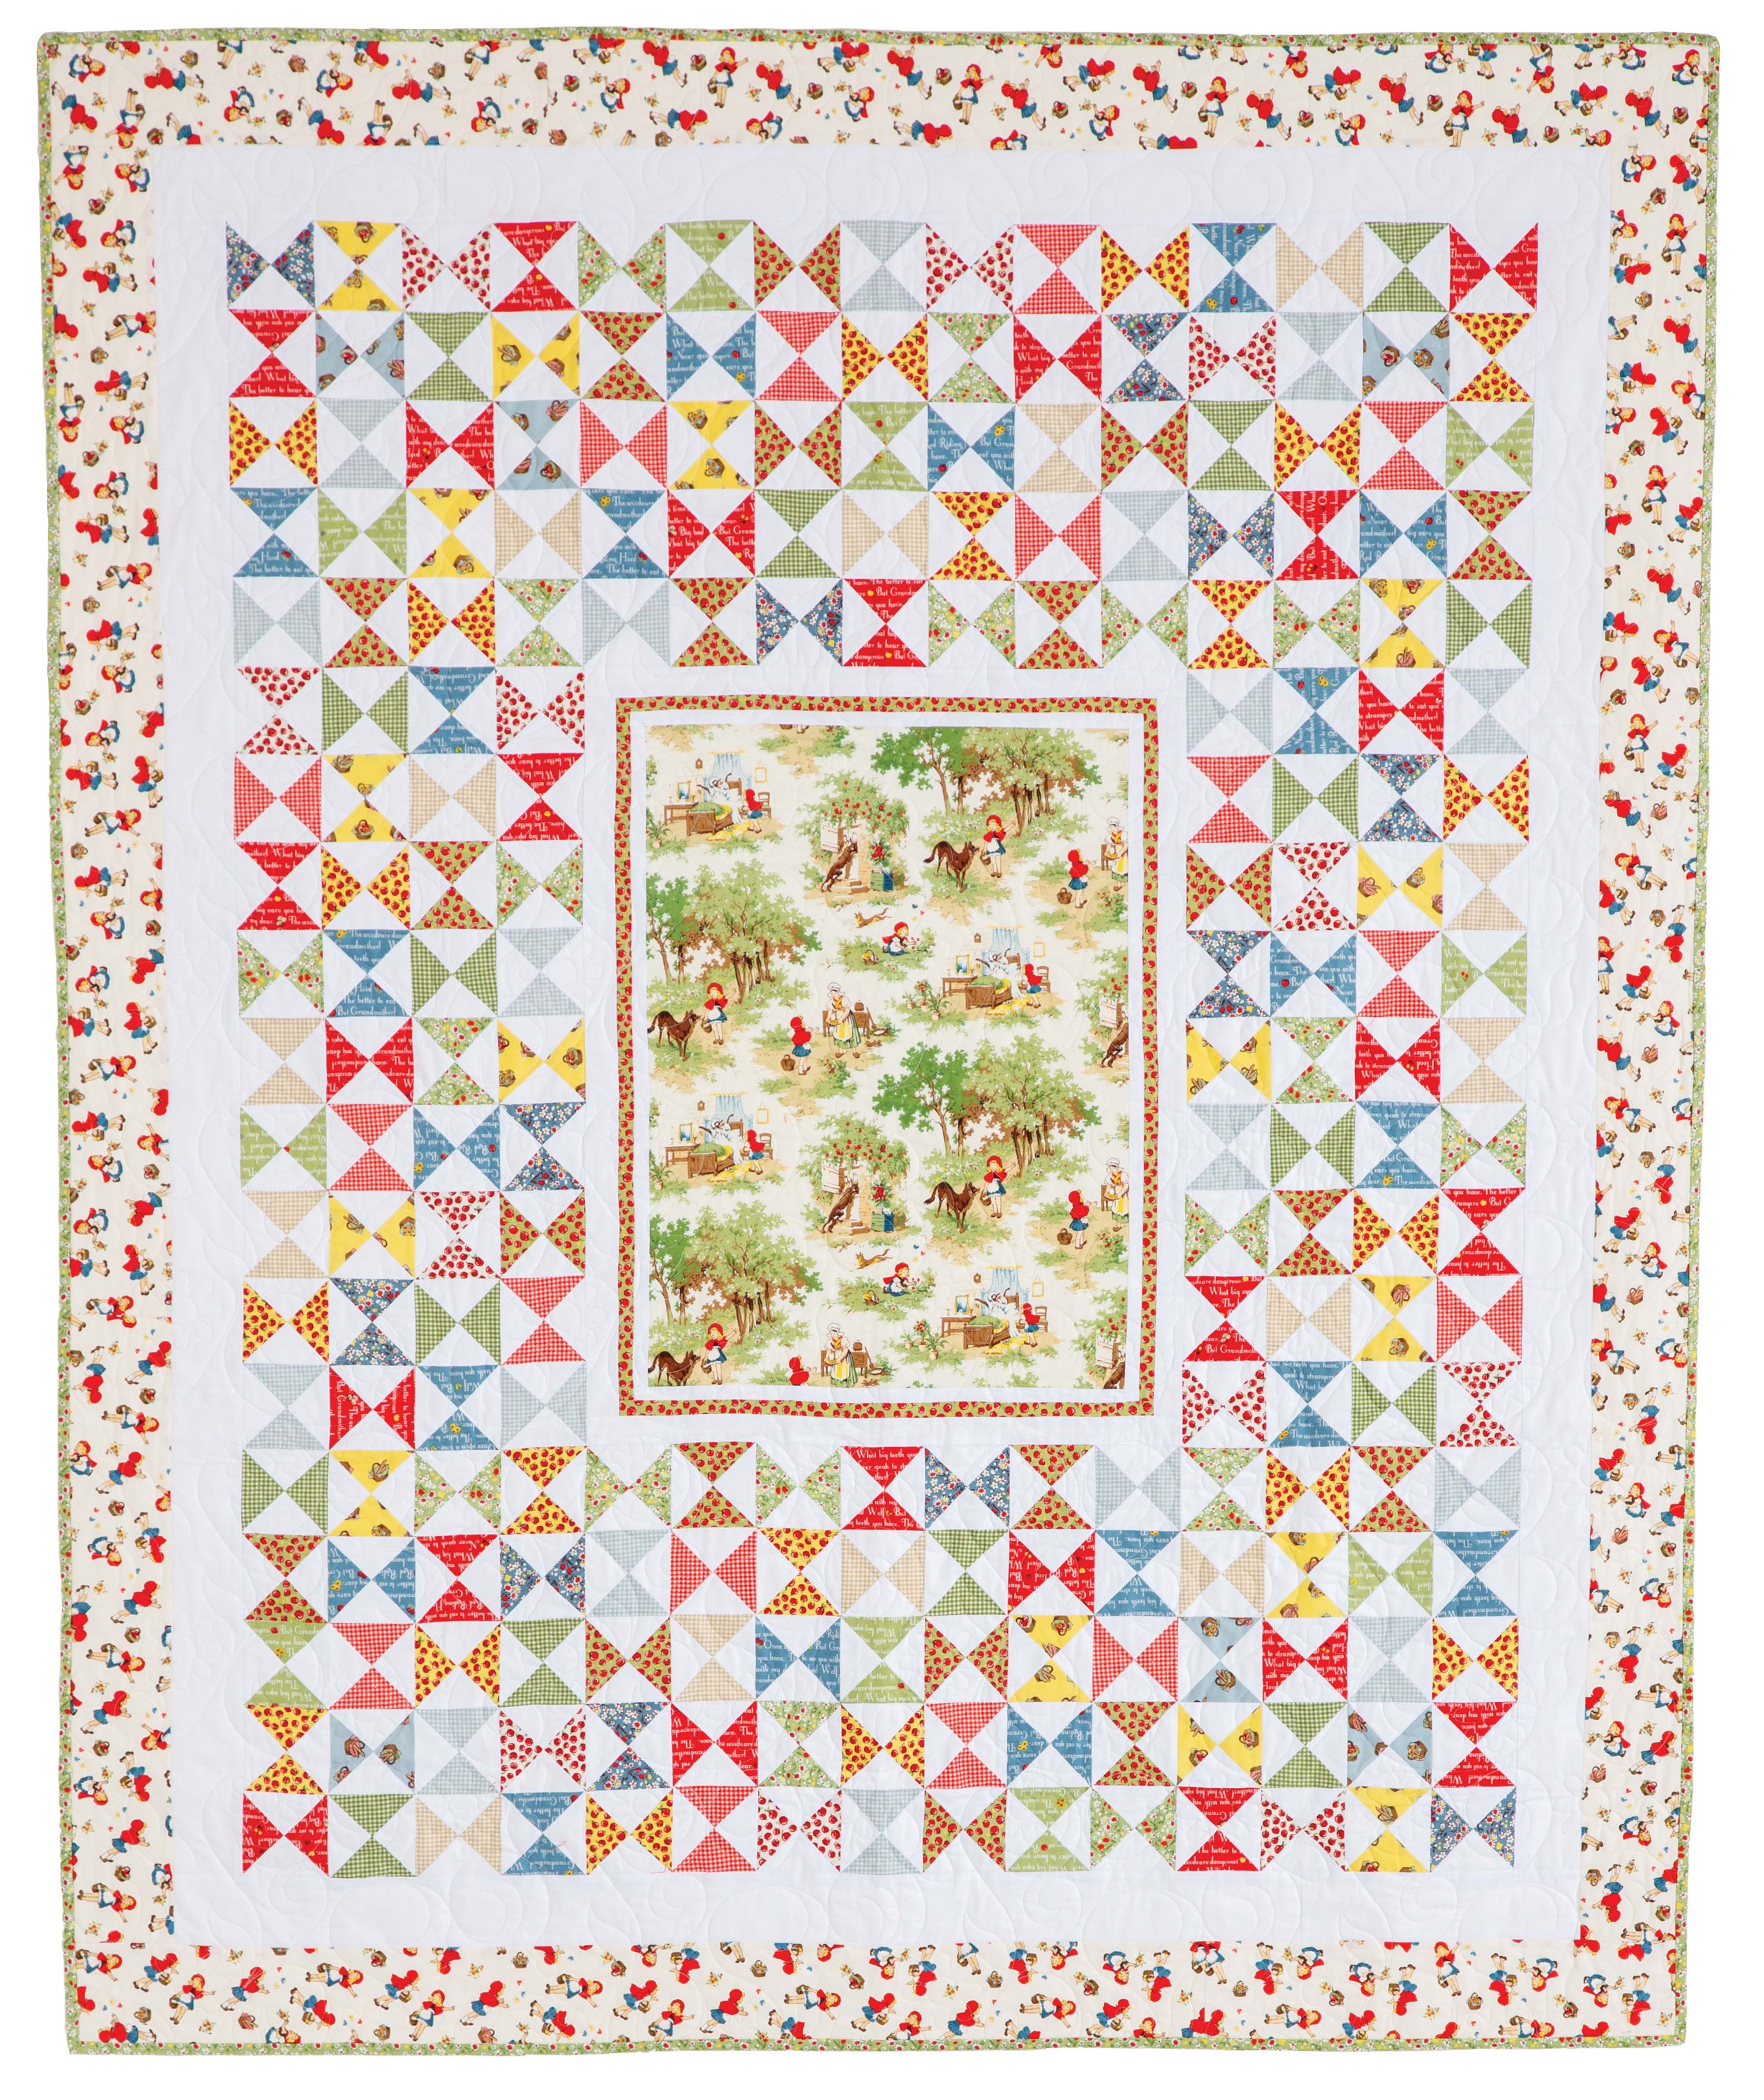 quilt-bedtime-story-flat